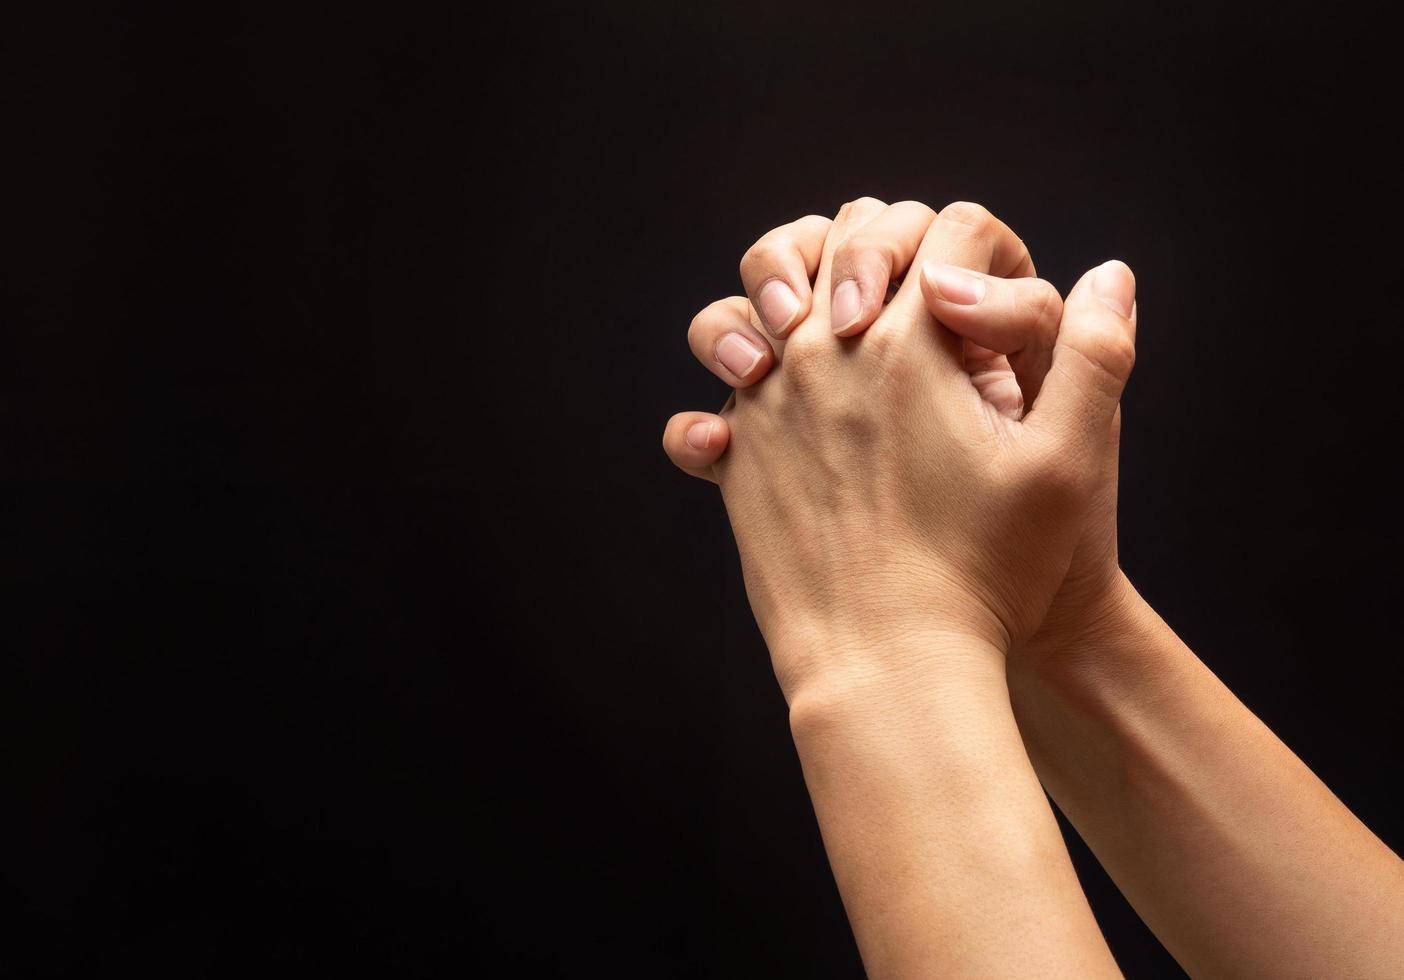 Hands out in prayer on black background photo